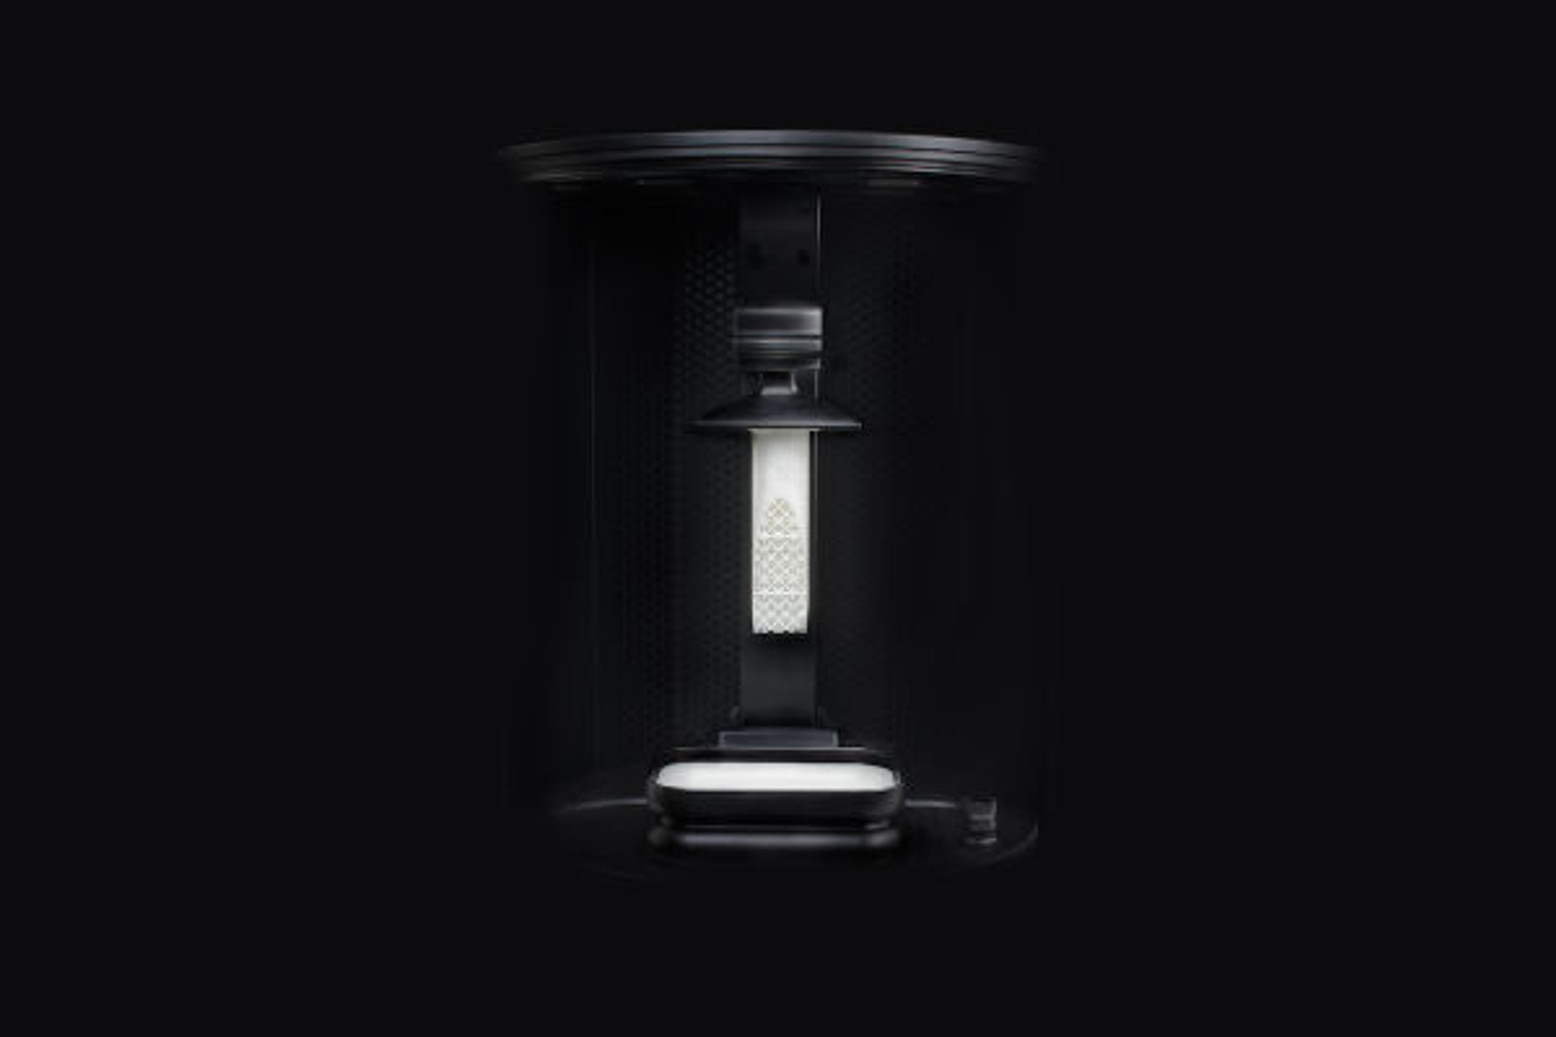 Carbon 3D, the 3D Printer that uses UV light